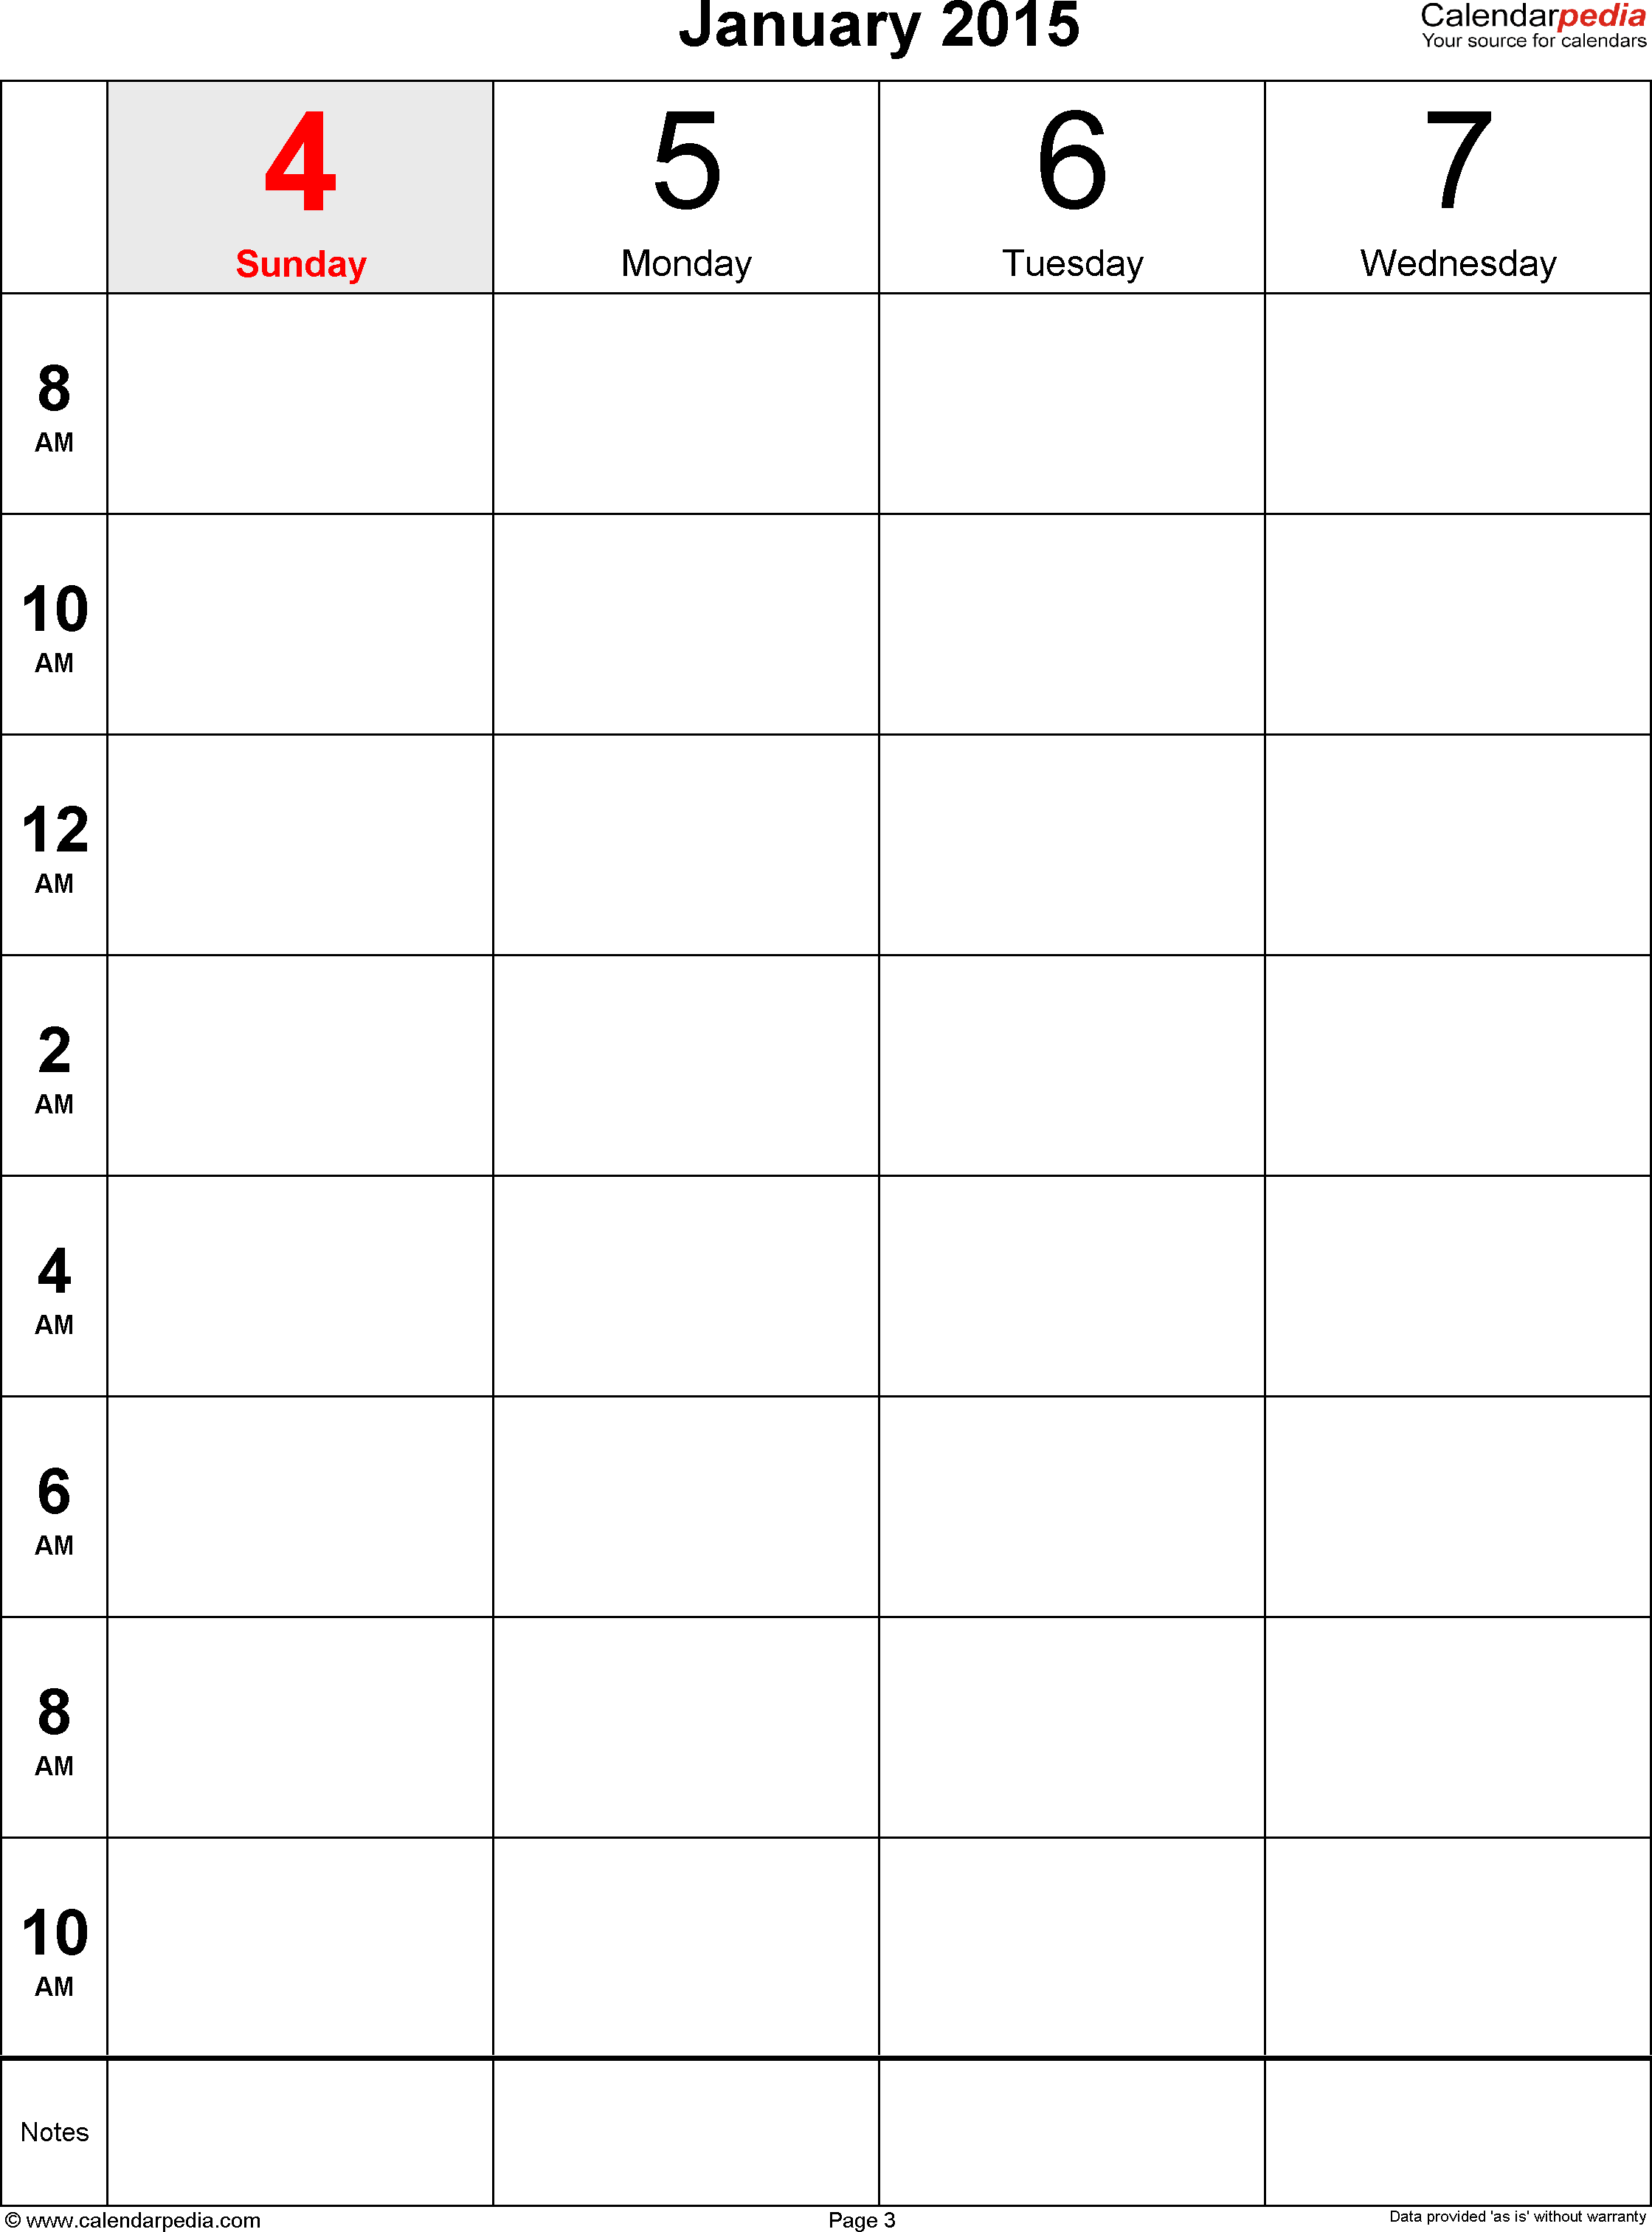 Weekly calendar 2015: template for Excel version 12, portrait, 106 pages, 2 pages to a week